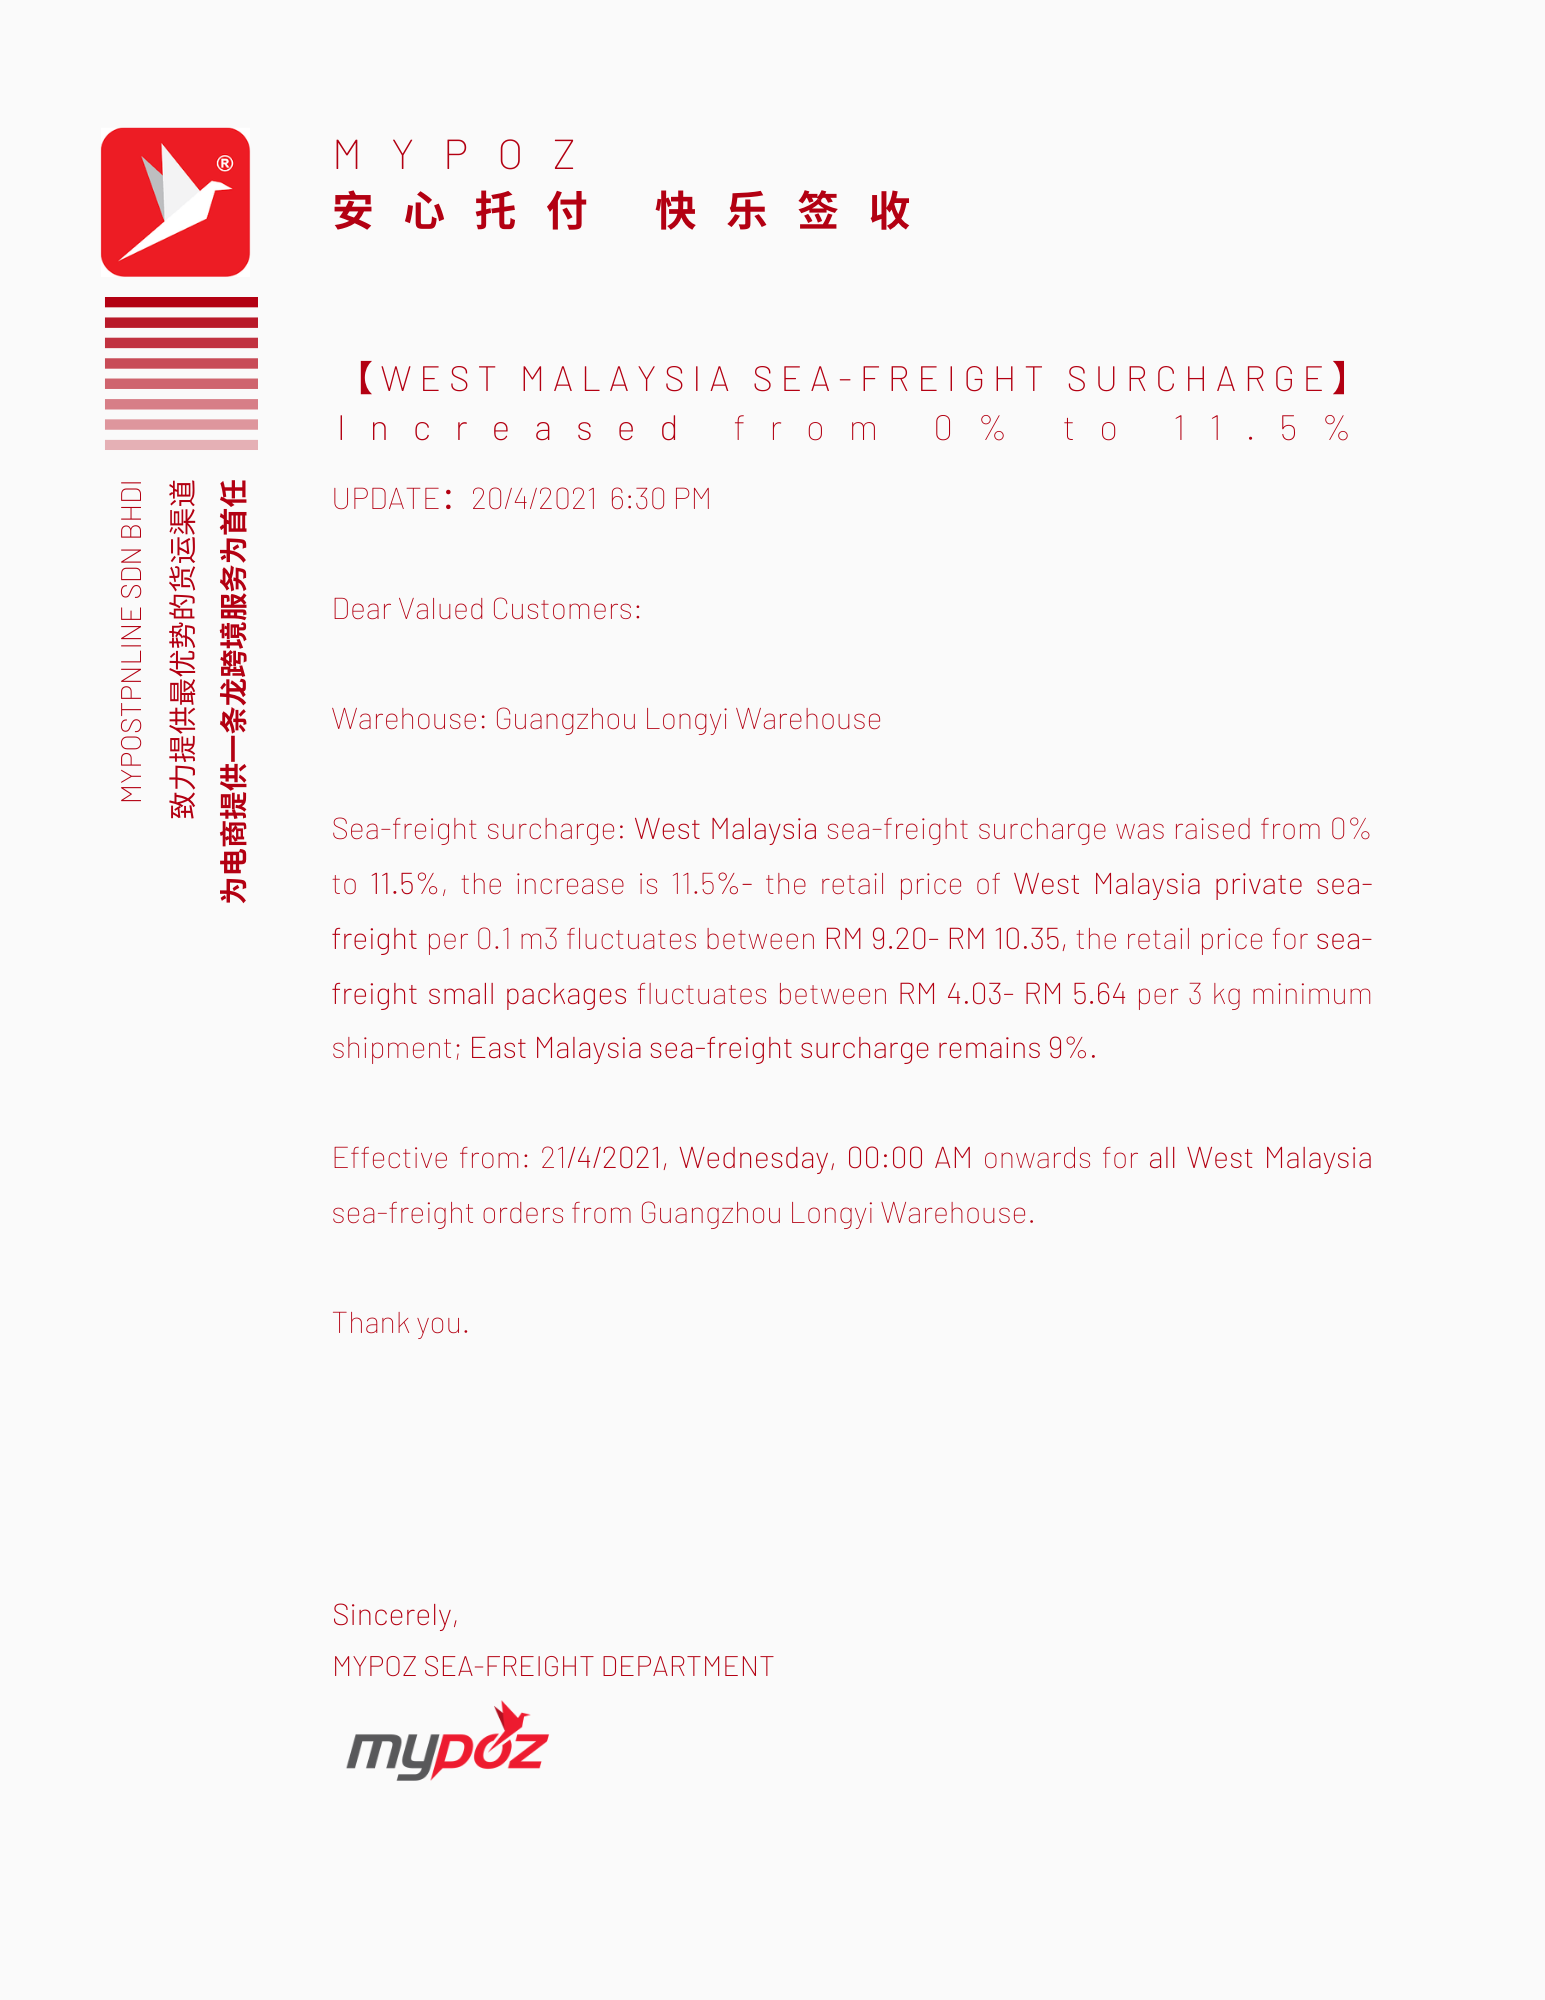 【NOTICE】WEST MALAYSIA SEA-FREIGHT SURCHARGE INCREASED FROM 0% TO 11.5%